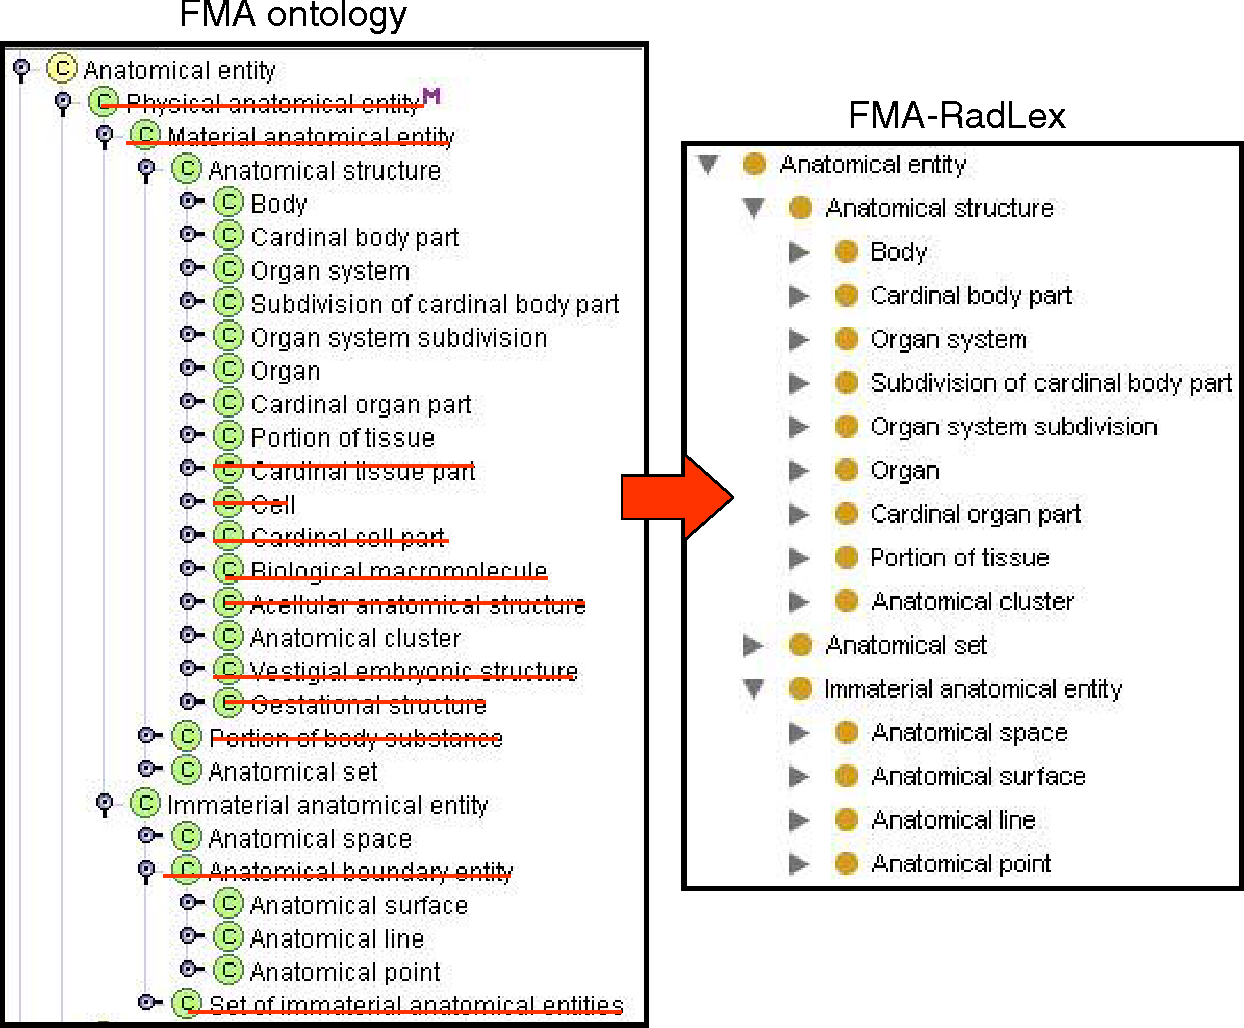 FMA-RadLex: An Application Ontology of Radiological Anatomy derived ...